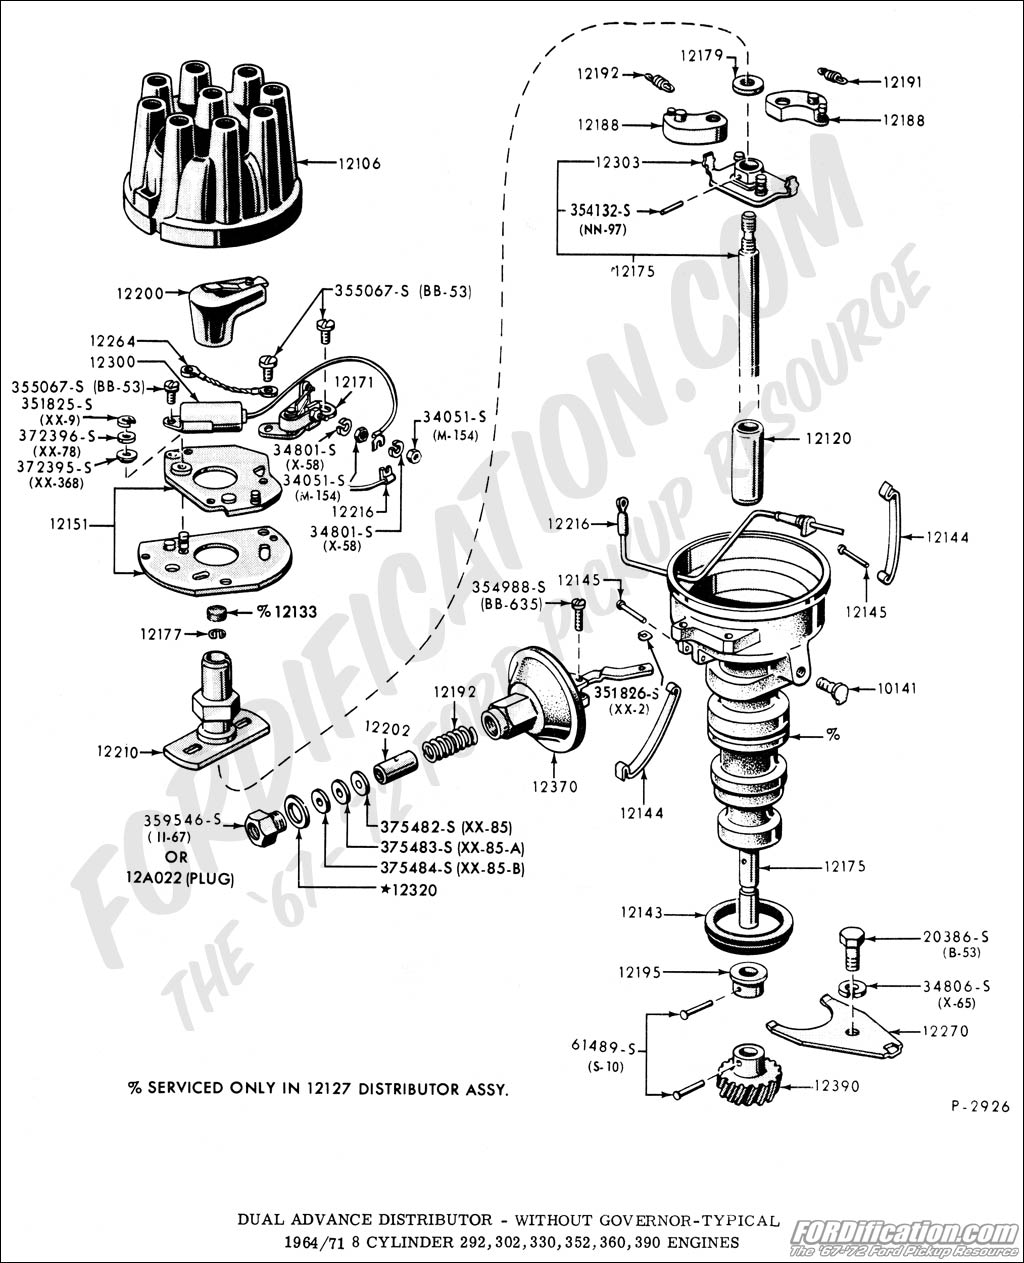 ford 302 distributor wiring diagram ford ignition switch wiring 4 wire ignition coil connector ford ford truck technical drawings and schematics section i delco remy distributor wiring diagram ford 302 no egr vacuum diagram ford 302 distributor wiring